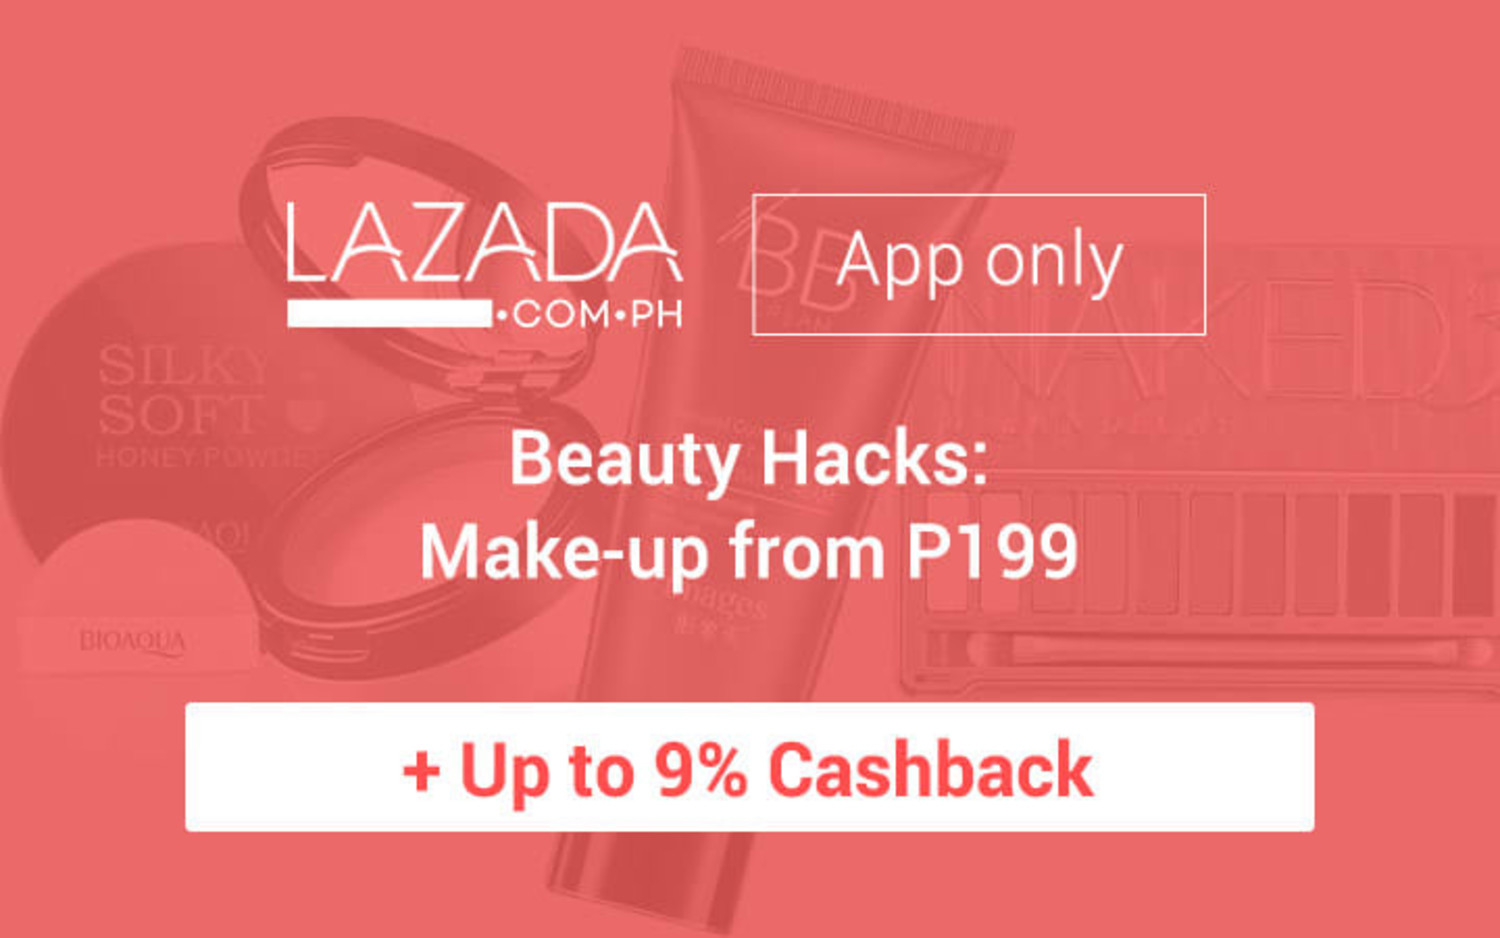 Lazada Beauty Hacks: Make-up from P199 + Up to 9% Cashback